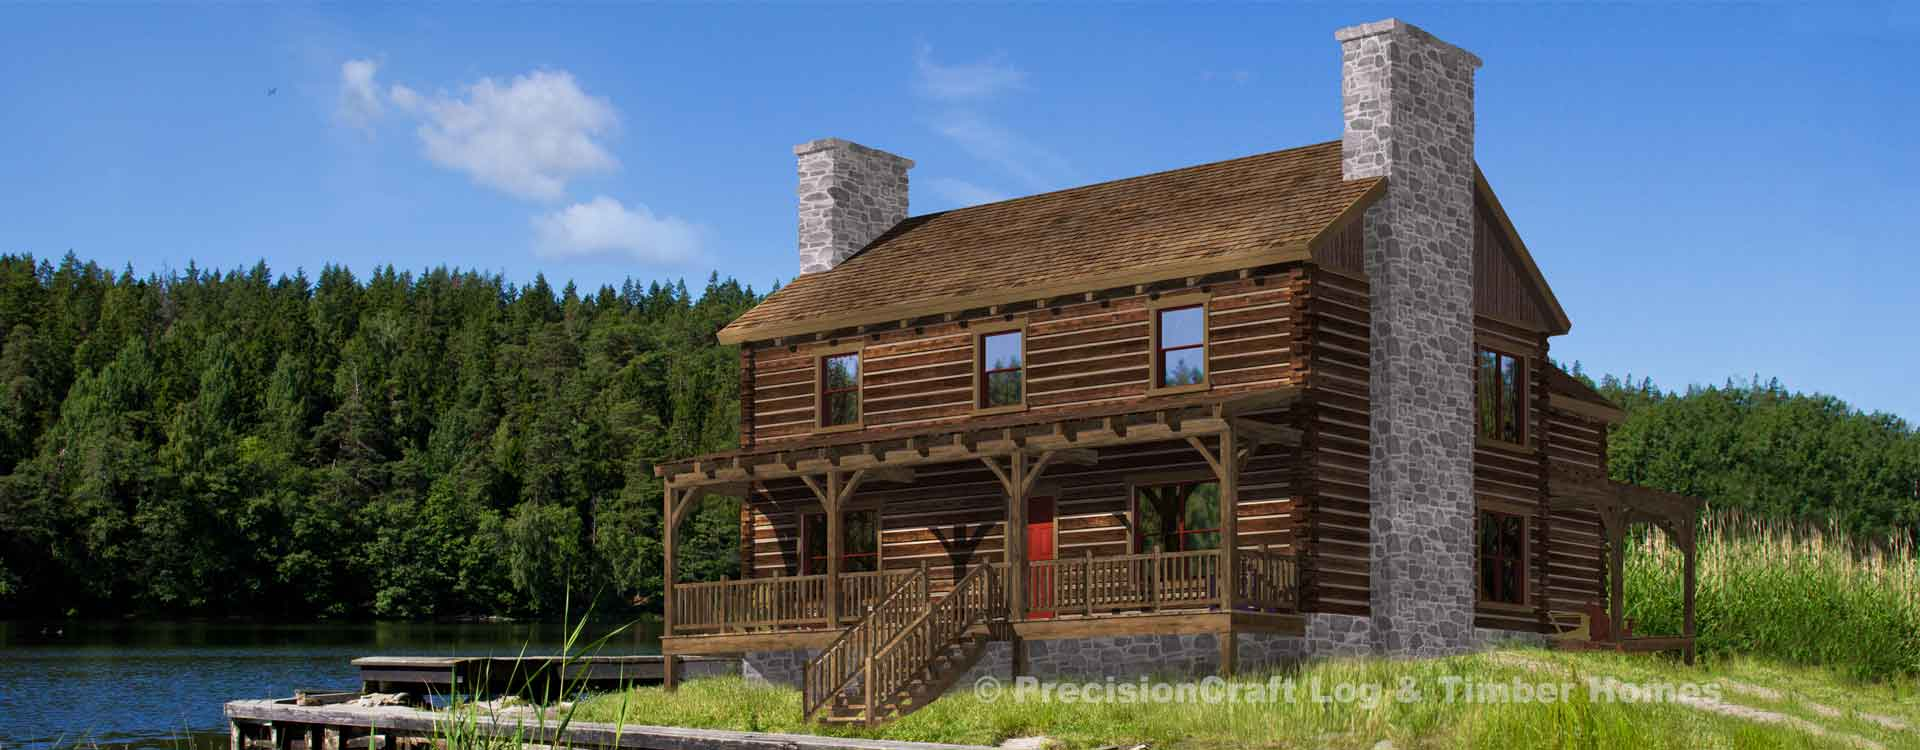 Stone Creek log home Rendering